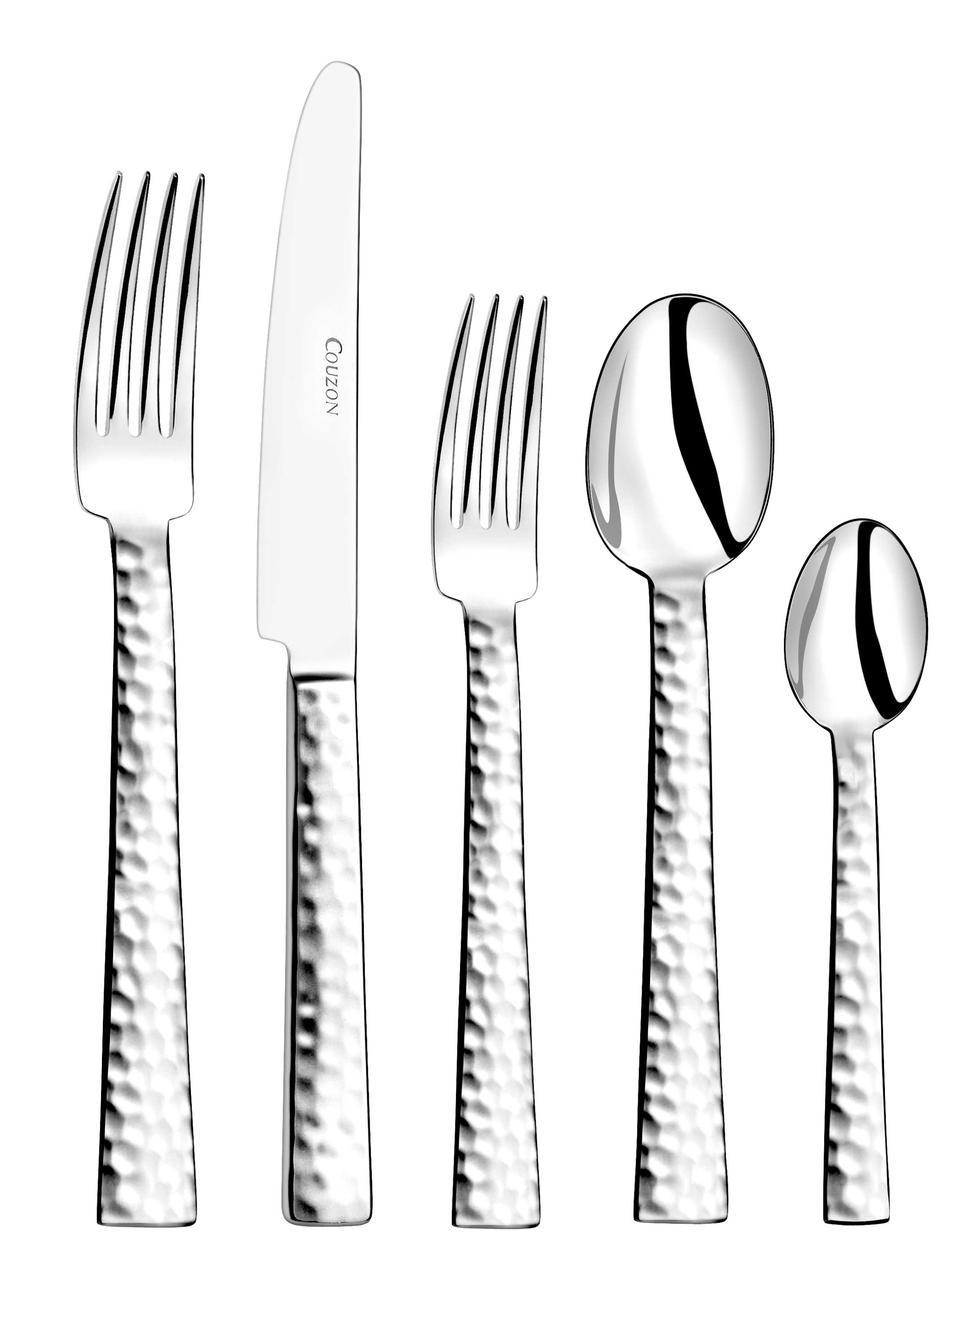 Couzon - Flatware - Ato Hammered Stainless Steel Five Piece Place